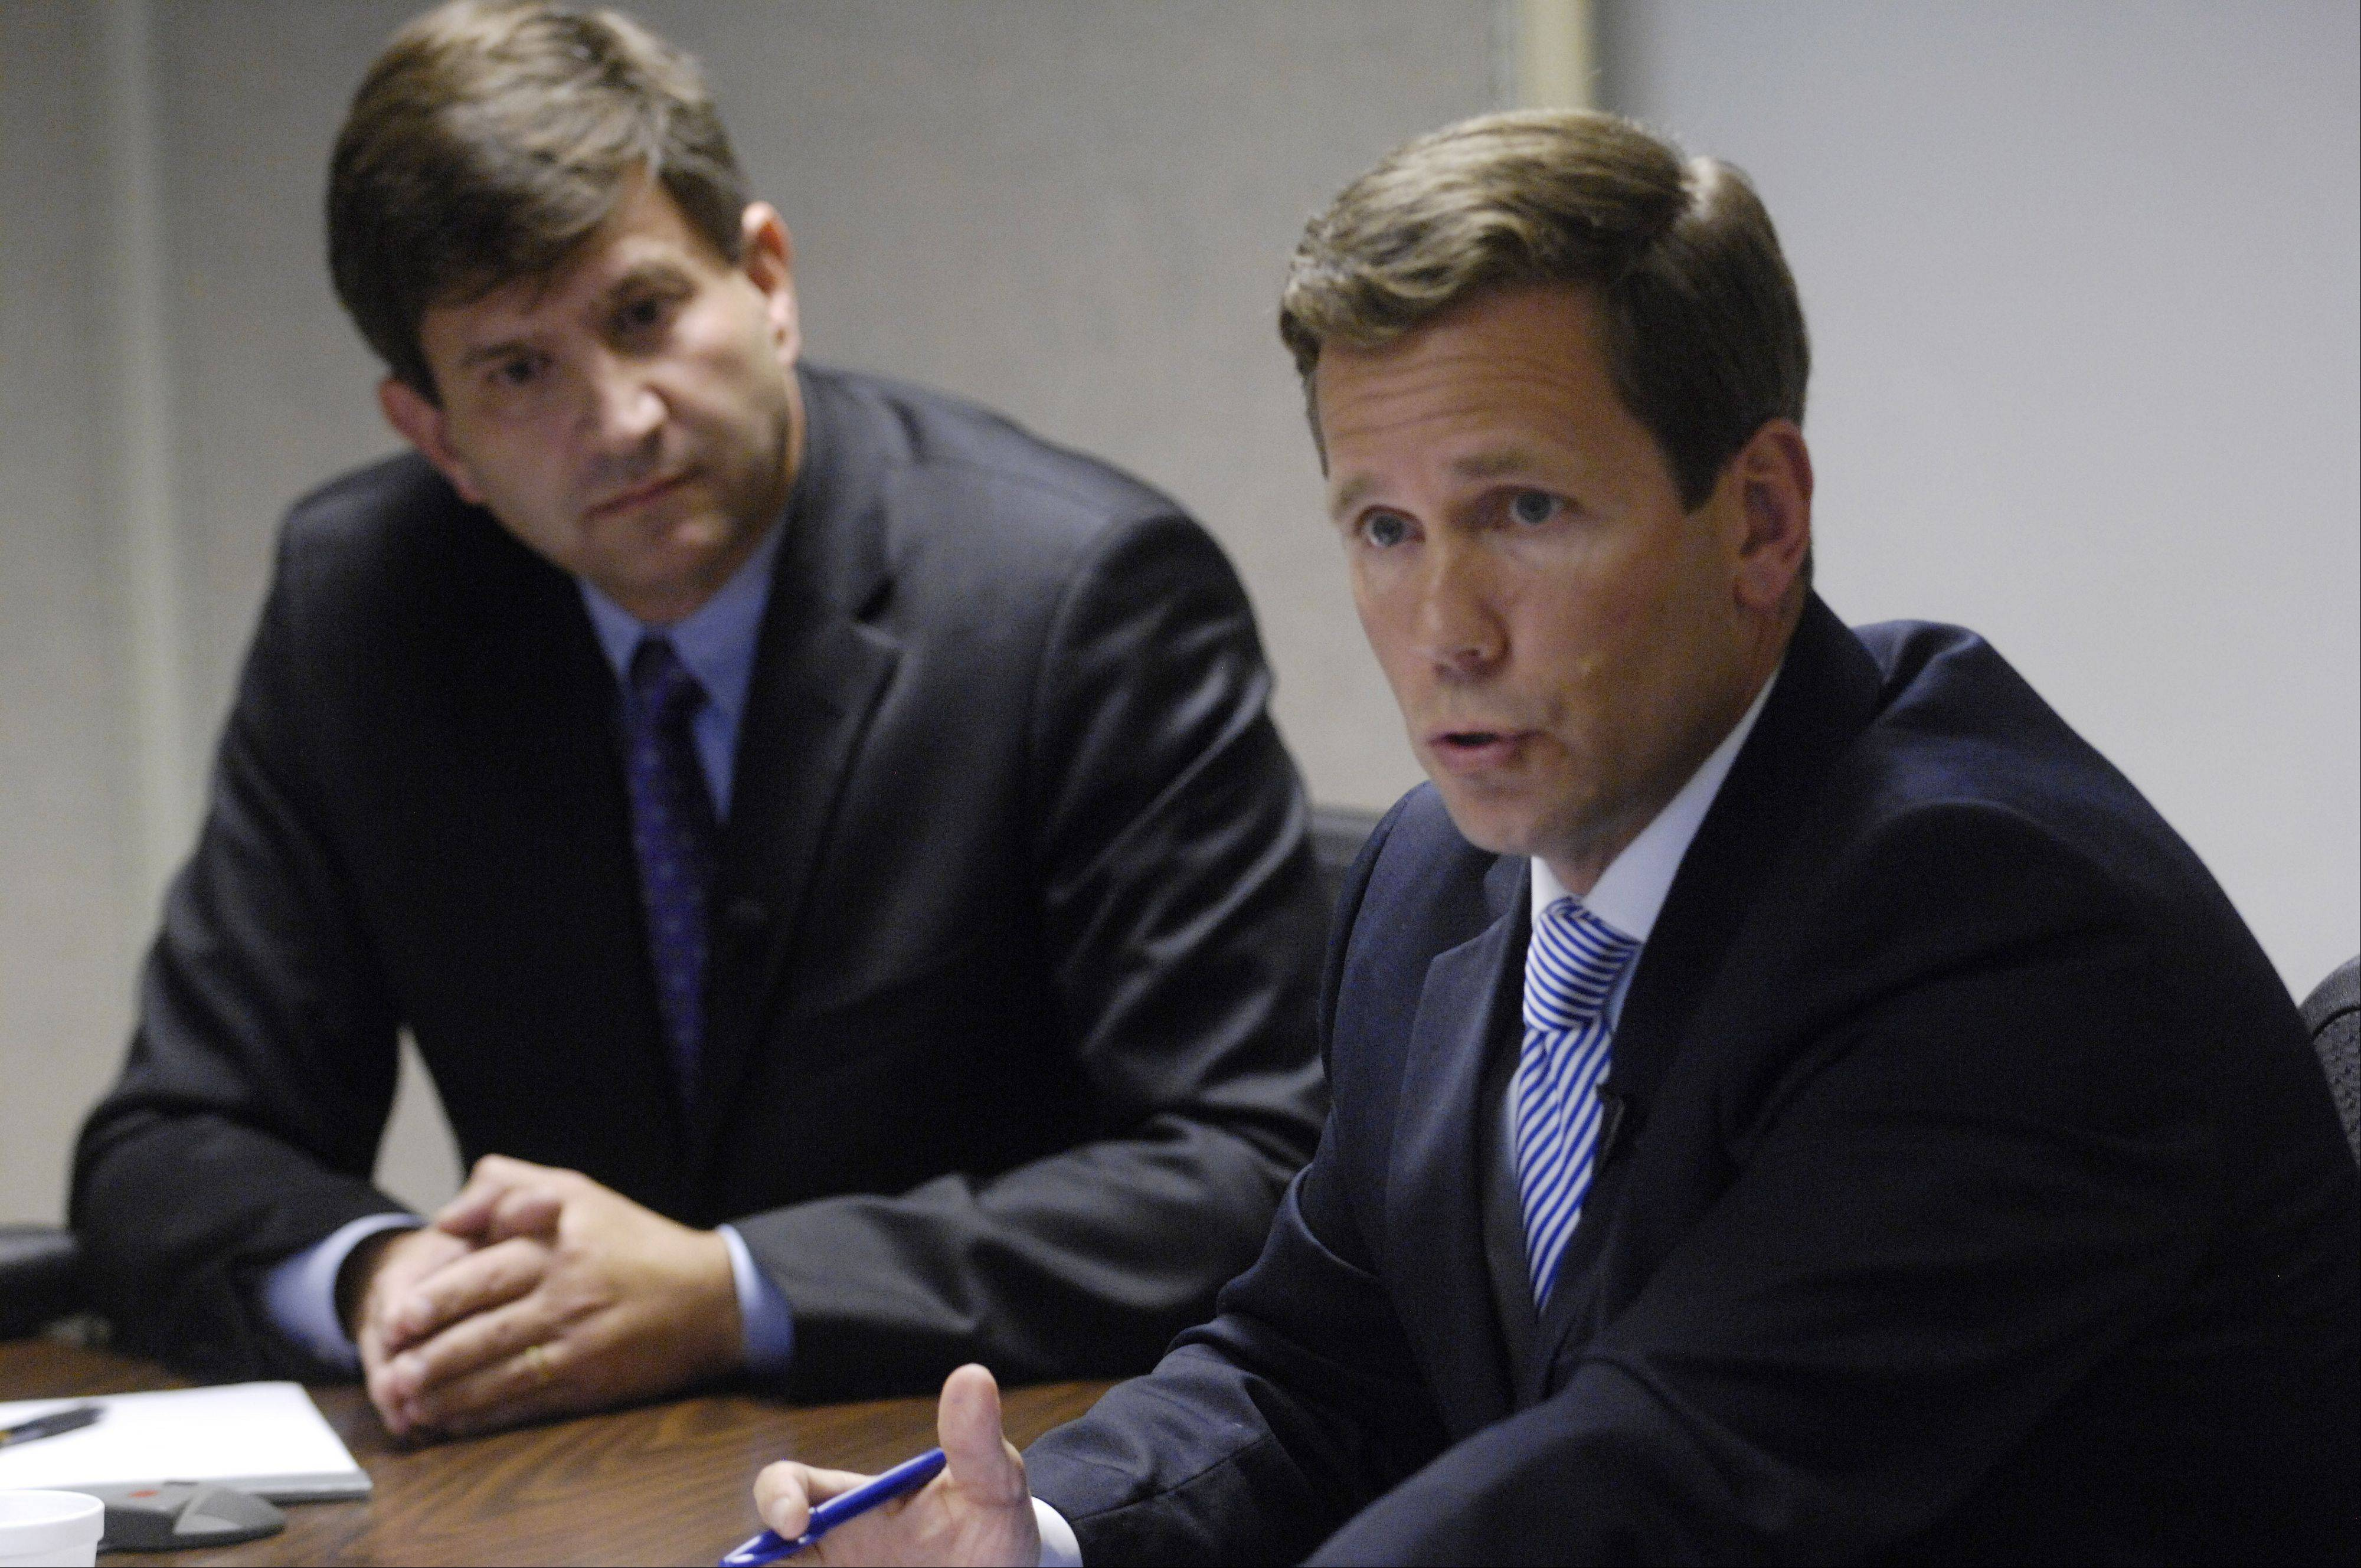 Republican incumbent Robert Dold, right, speaks as Democratic challenger Brad Schneider looks on during a meeting with the Daily Herald Editorial Board Wednesday. They are running in the 10th Congressional District.